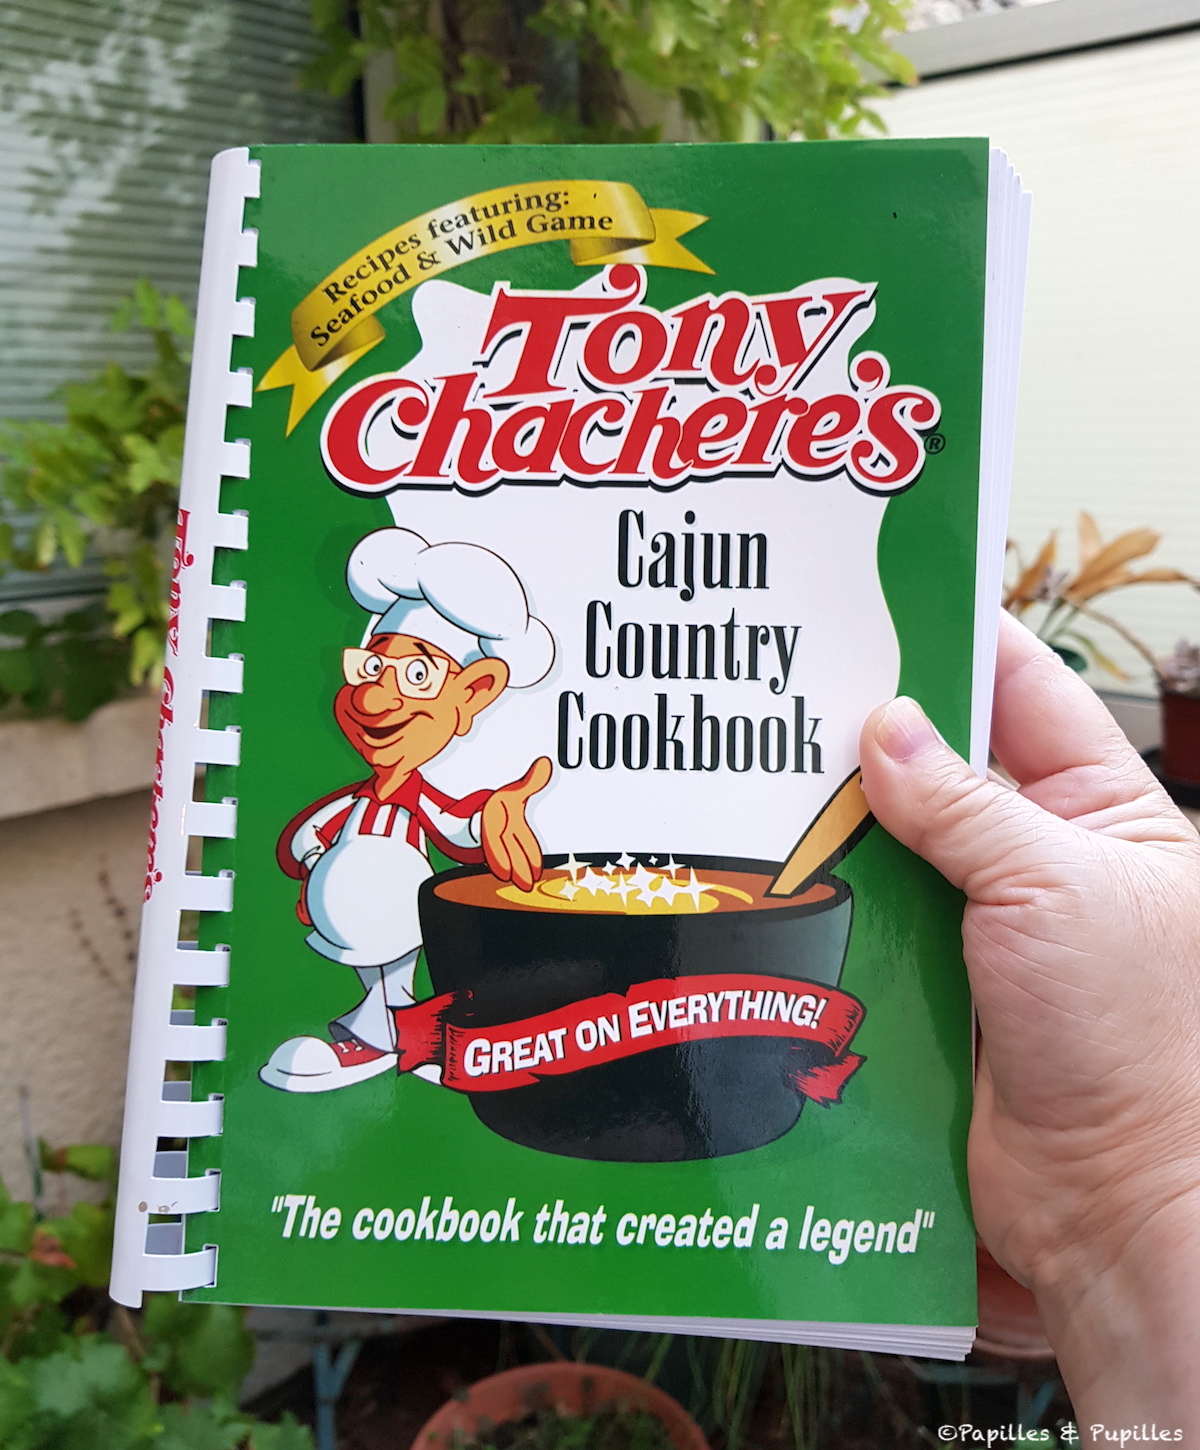 Tony Chacheres Cajun Country Cookbook